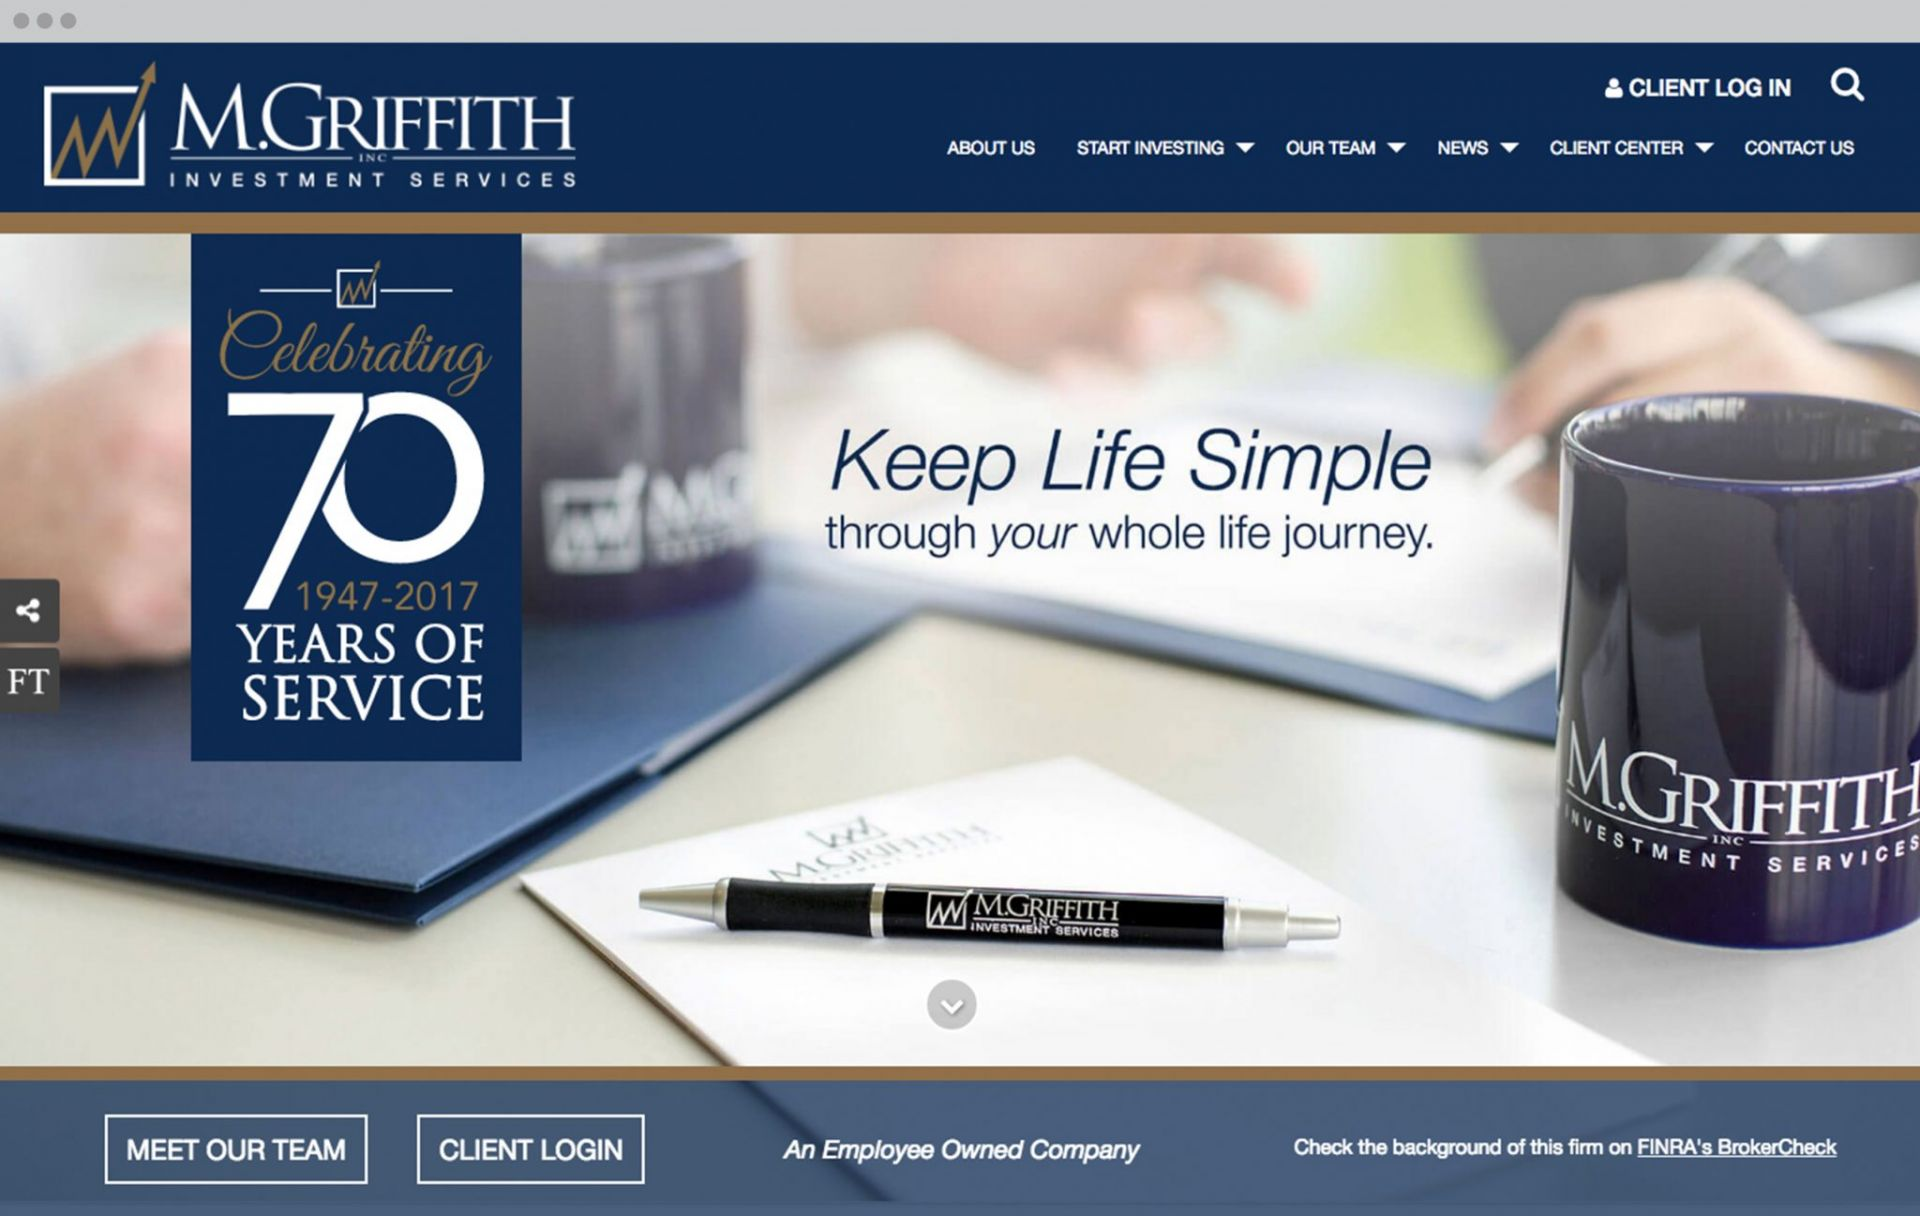 M. Griffith Homepage Design